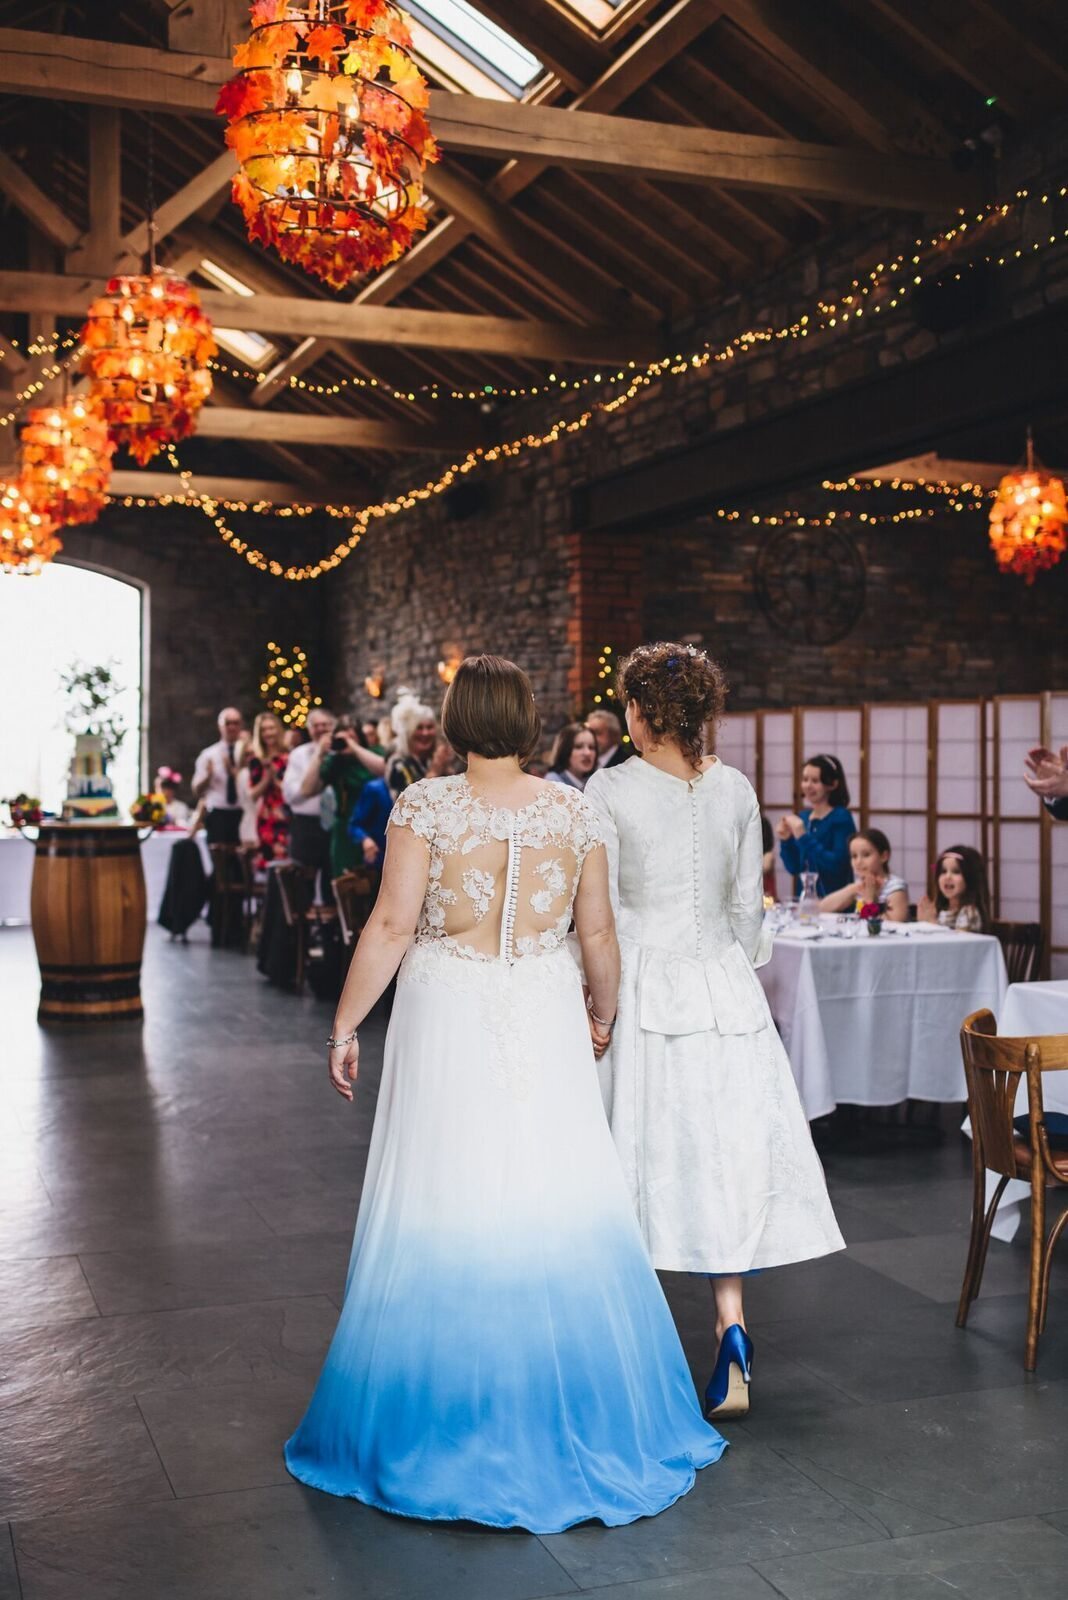 Dip dye wedding dress by lucy cant dance photography by